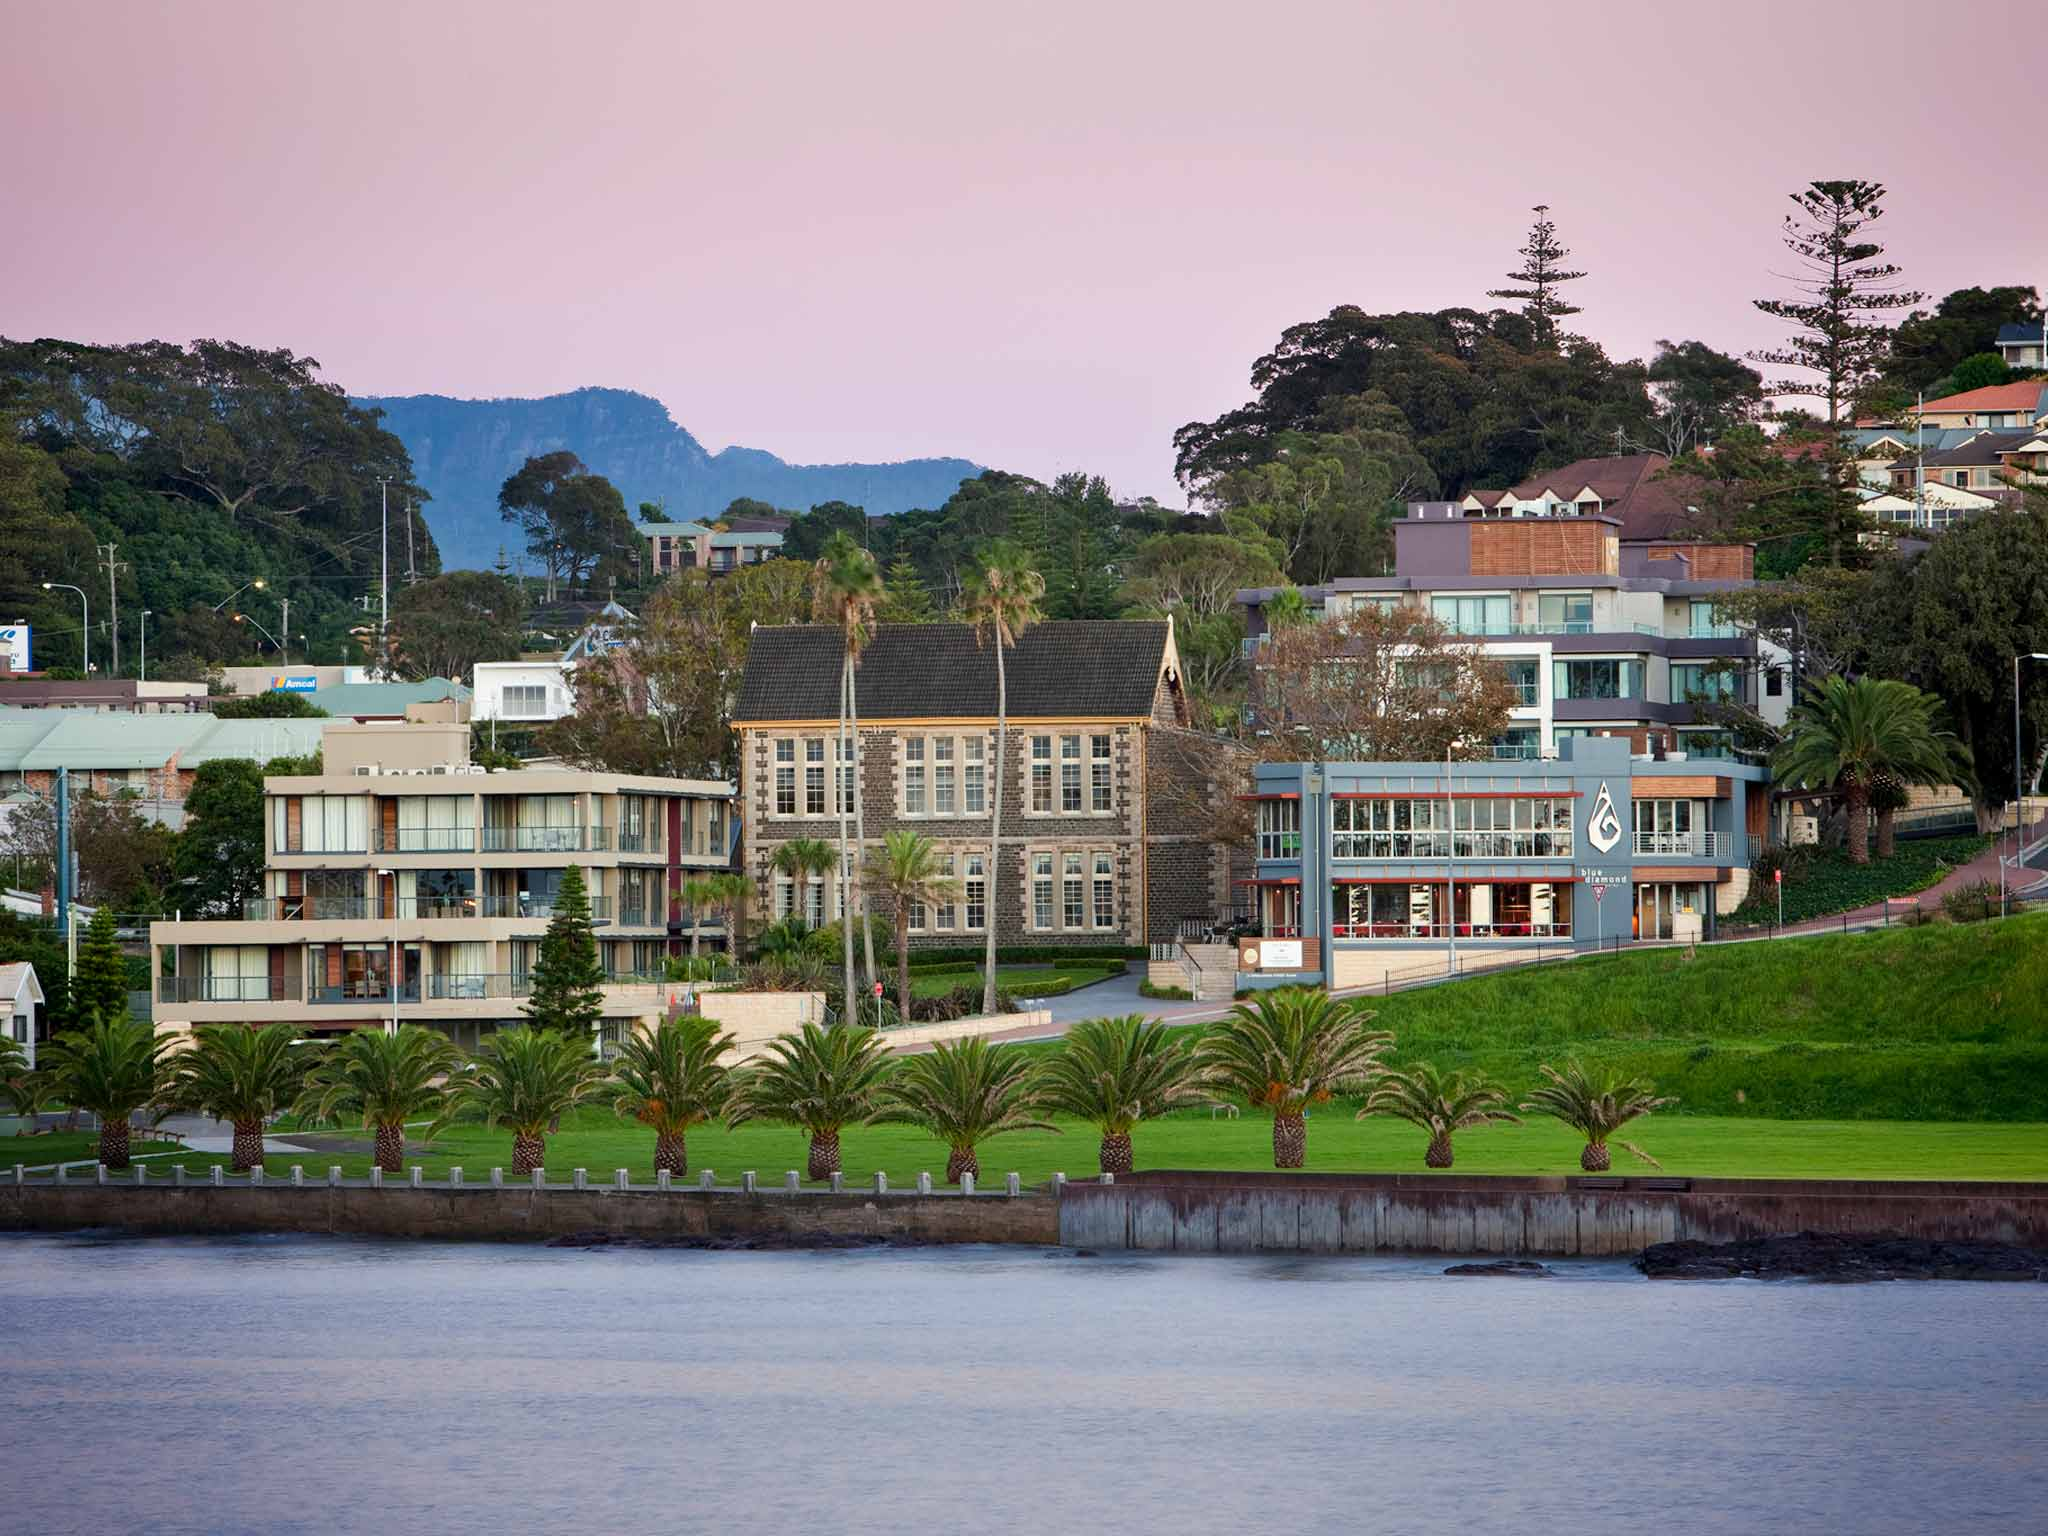 Hôtel - The Sebel Kiama Harbourside